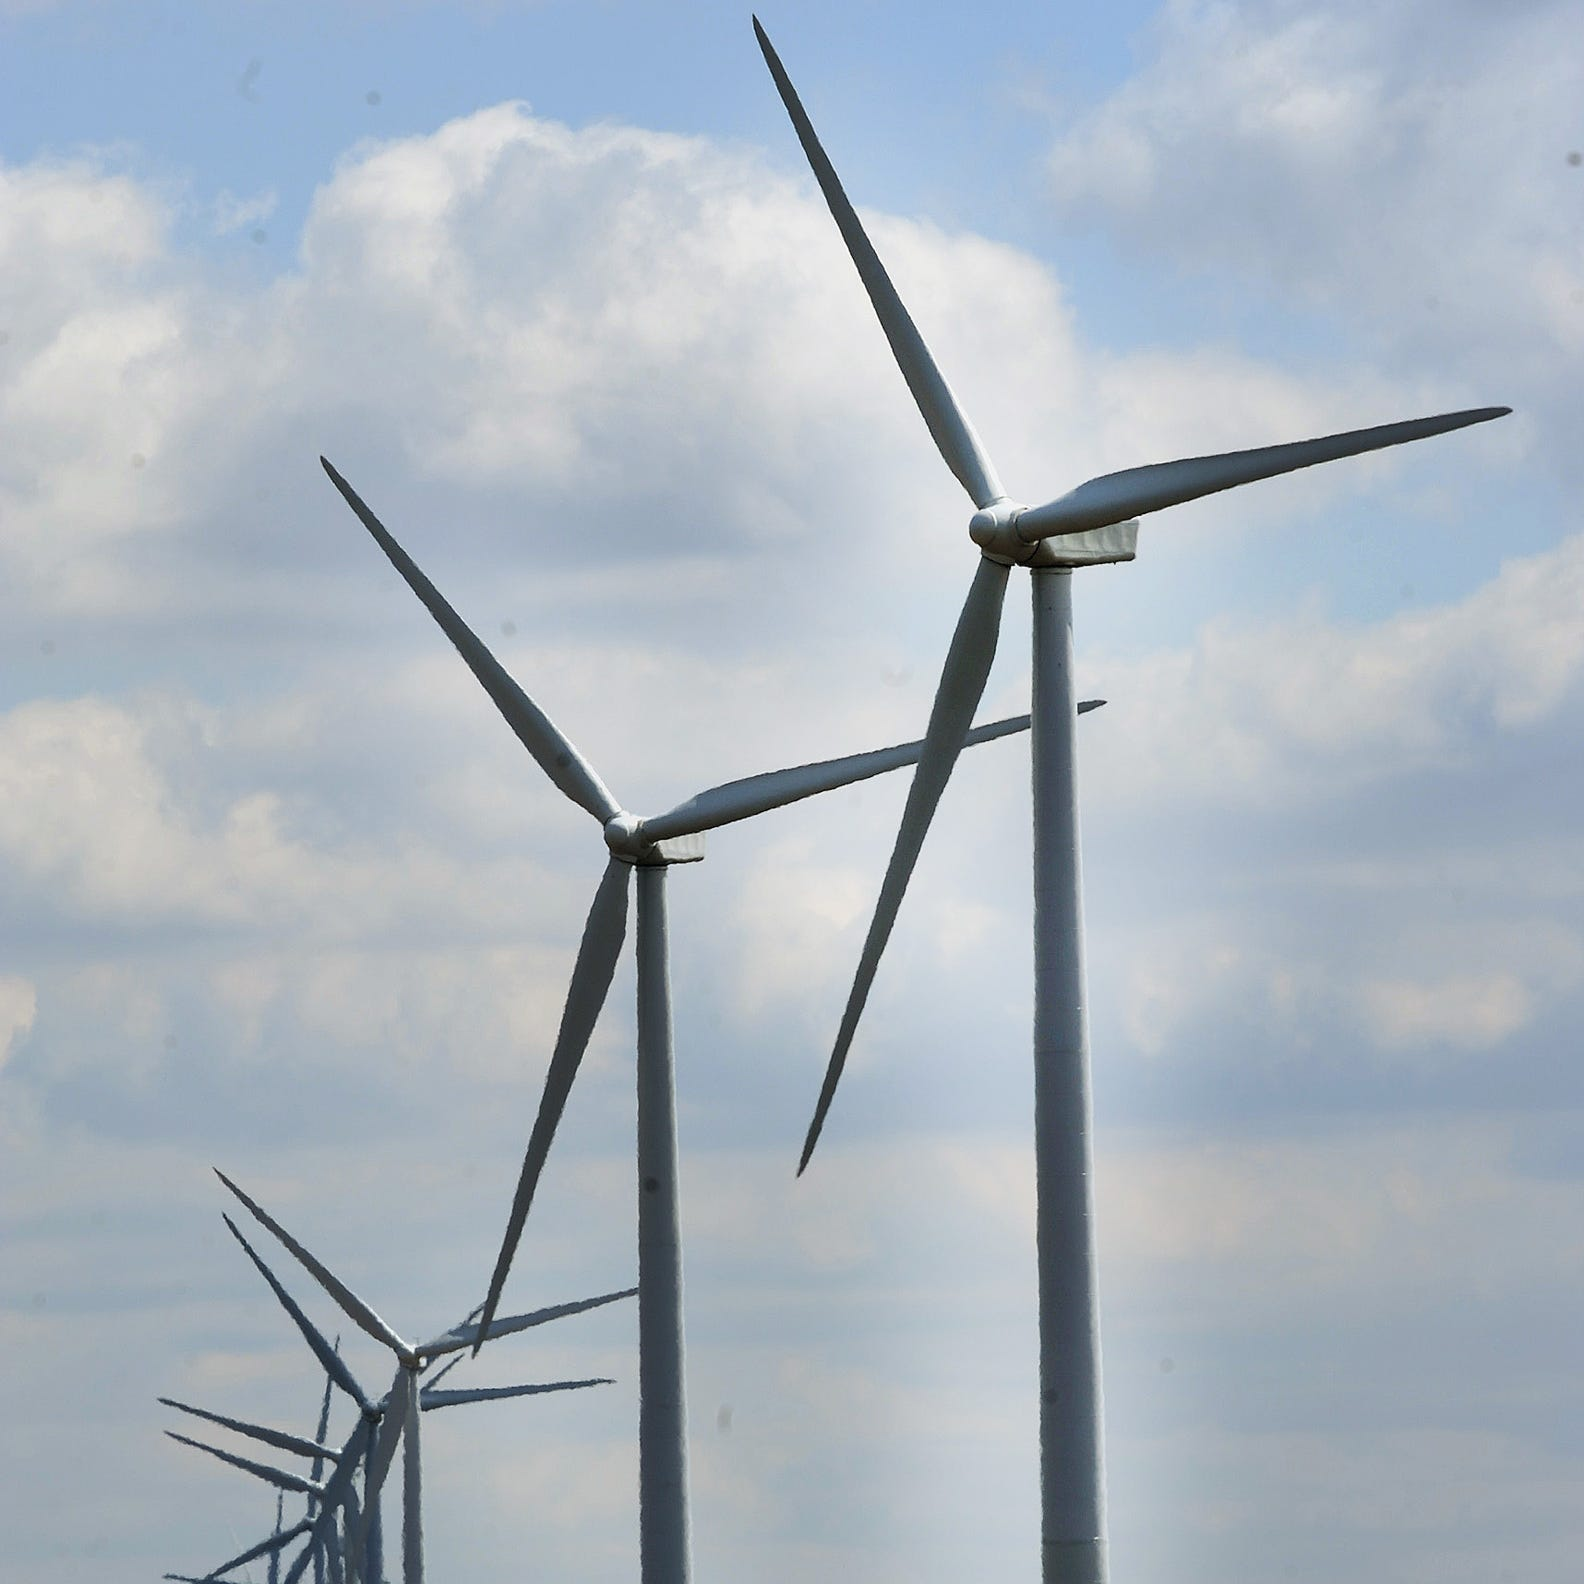 Ordinance proposes to ban wind farms